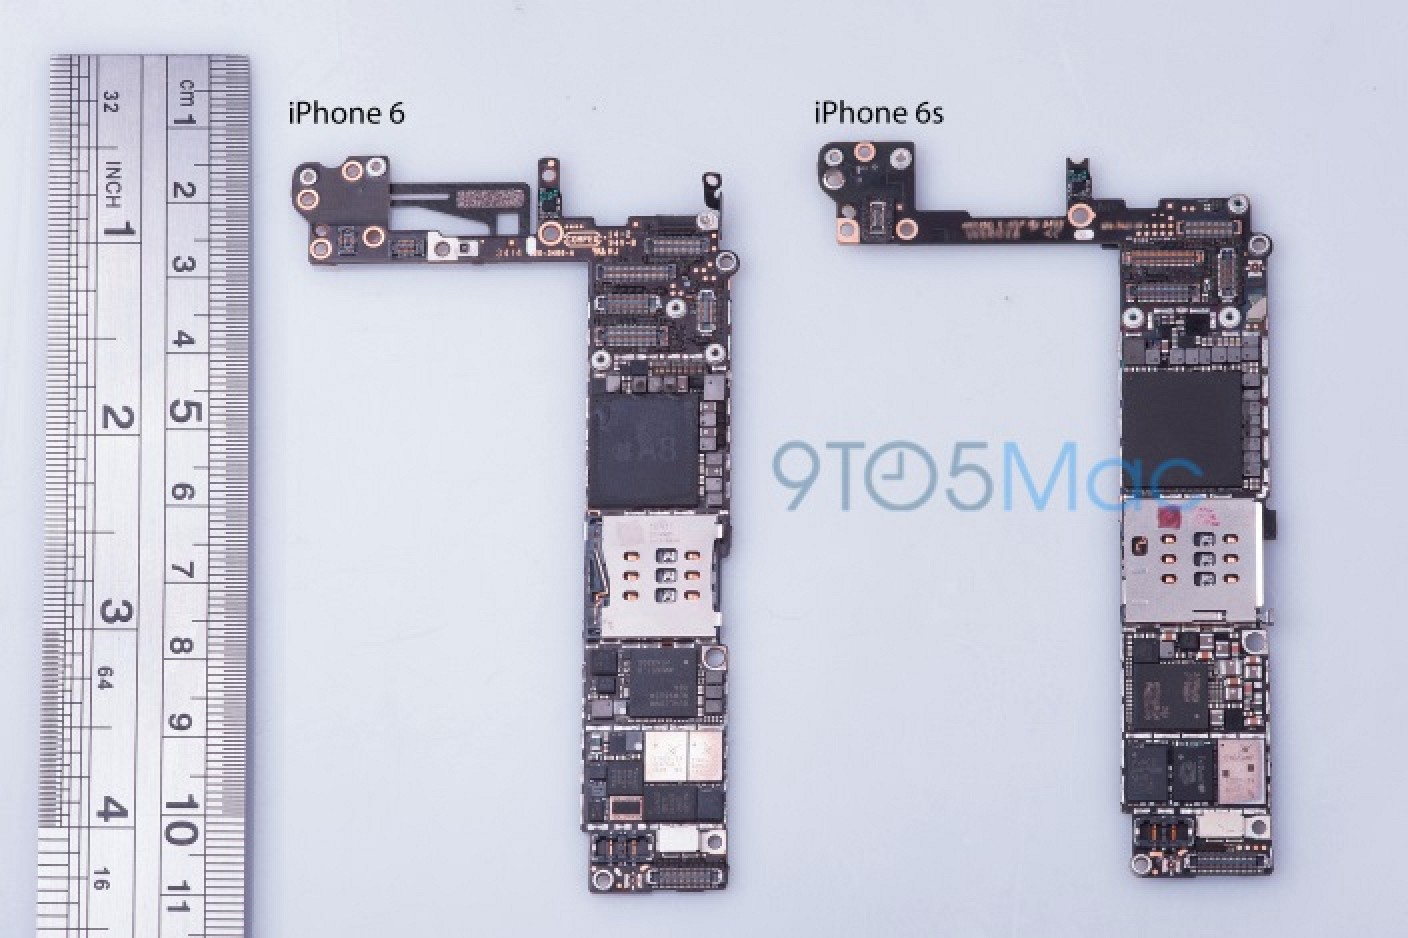 39 iphone 6s 39 logic board suggests 16gb base model and updated nfc hardware macrumors